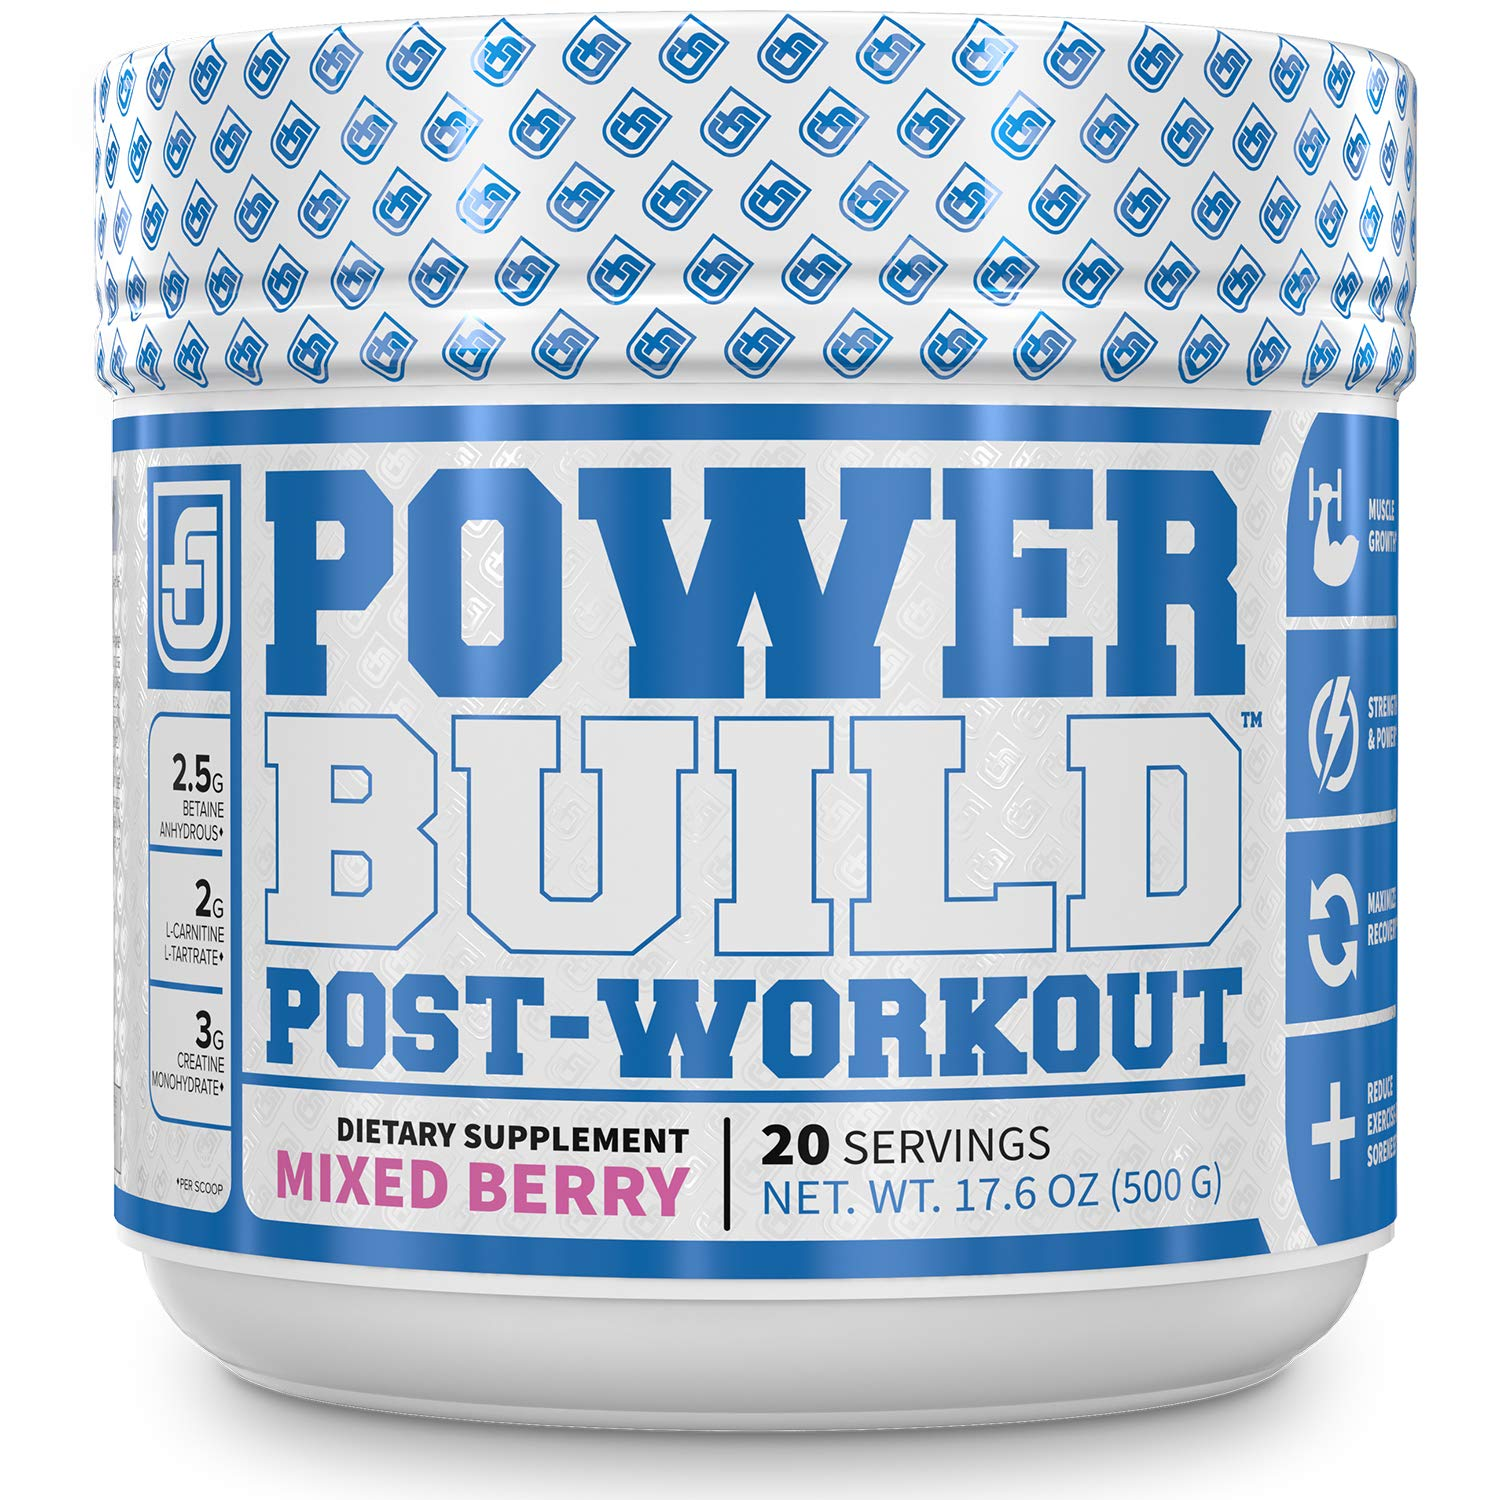 POWERBUILD Clinically-Dosed Post Workout Recovery & Muscle Building Supplement - Boost Muscle Growth, Recovery, & Strength - Creatine, Glutamine, & 5 More Powerful Ingredients - Mixed Berry Blast 17.6 oz by Jacked Factory